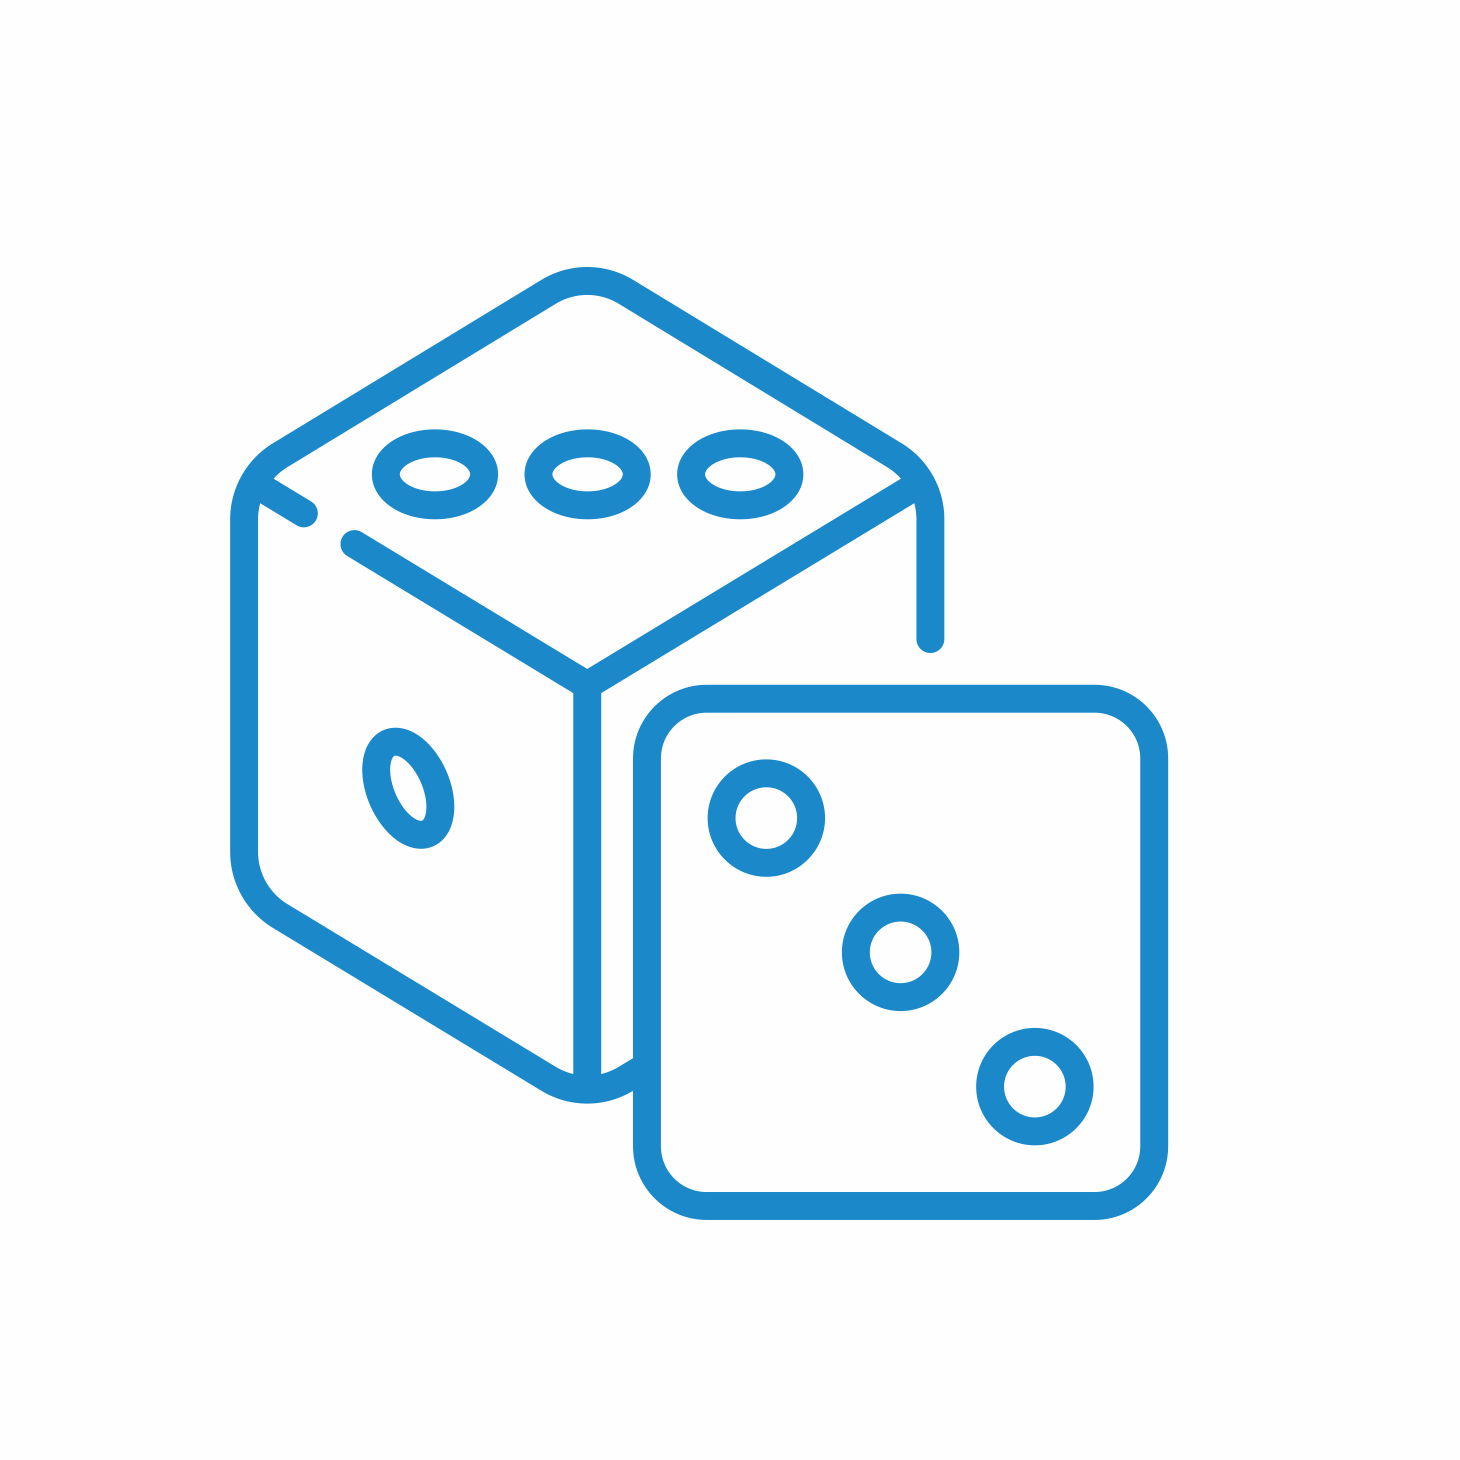 Build a Virtual Dice icon